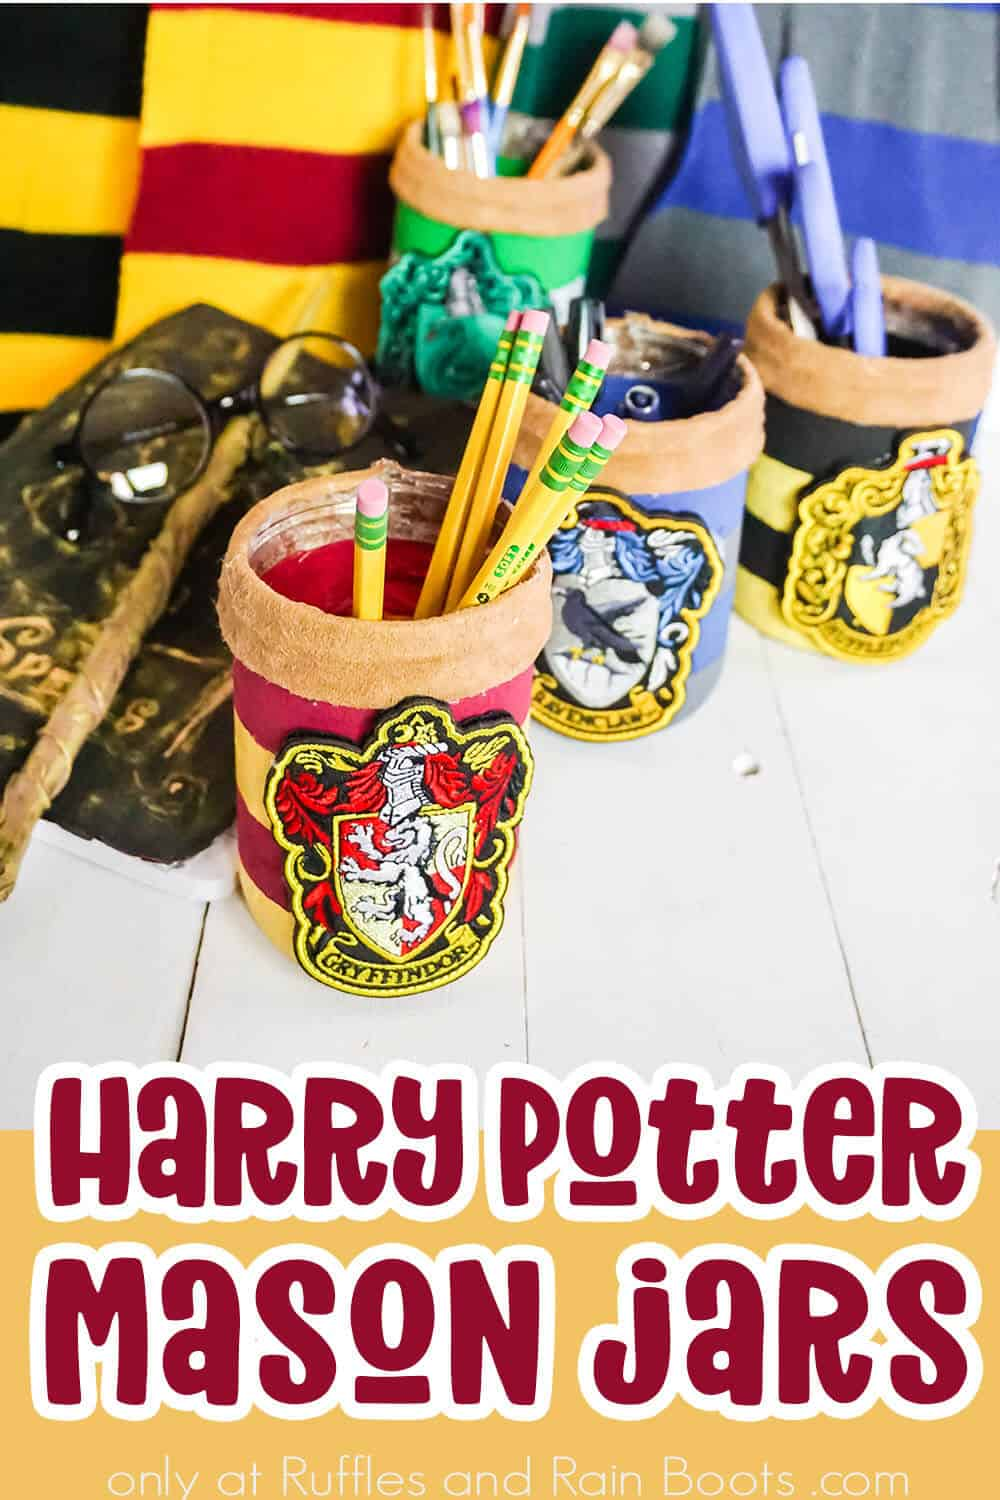 side view of hogwarts house painted jars with text which reads harry potter mason jars